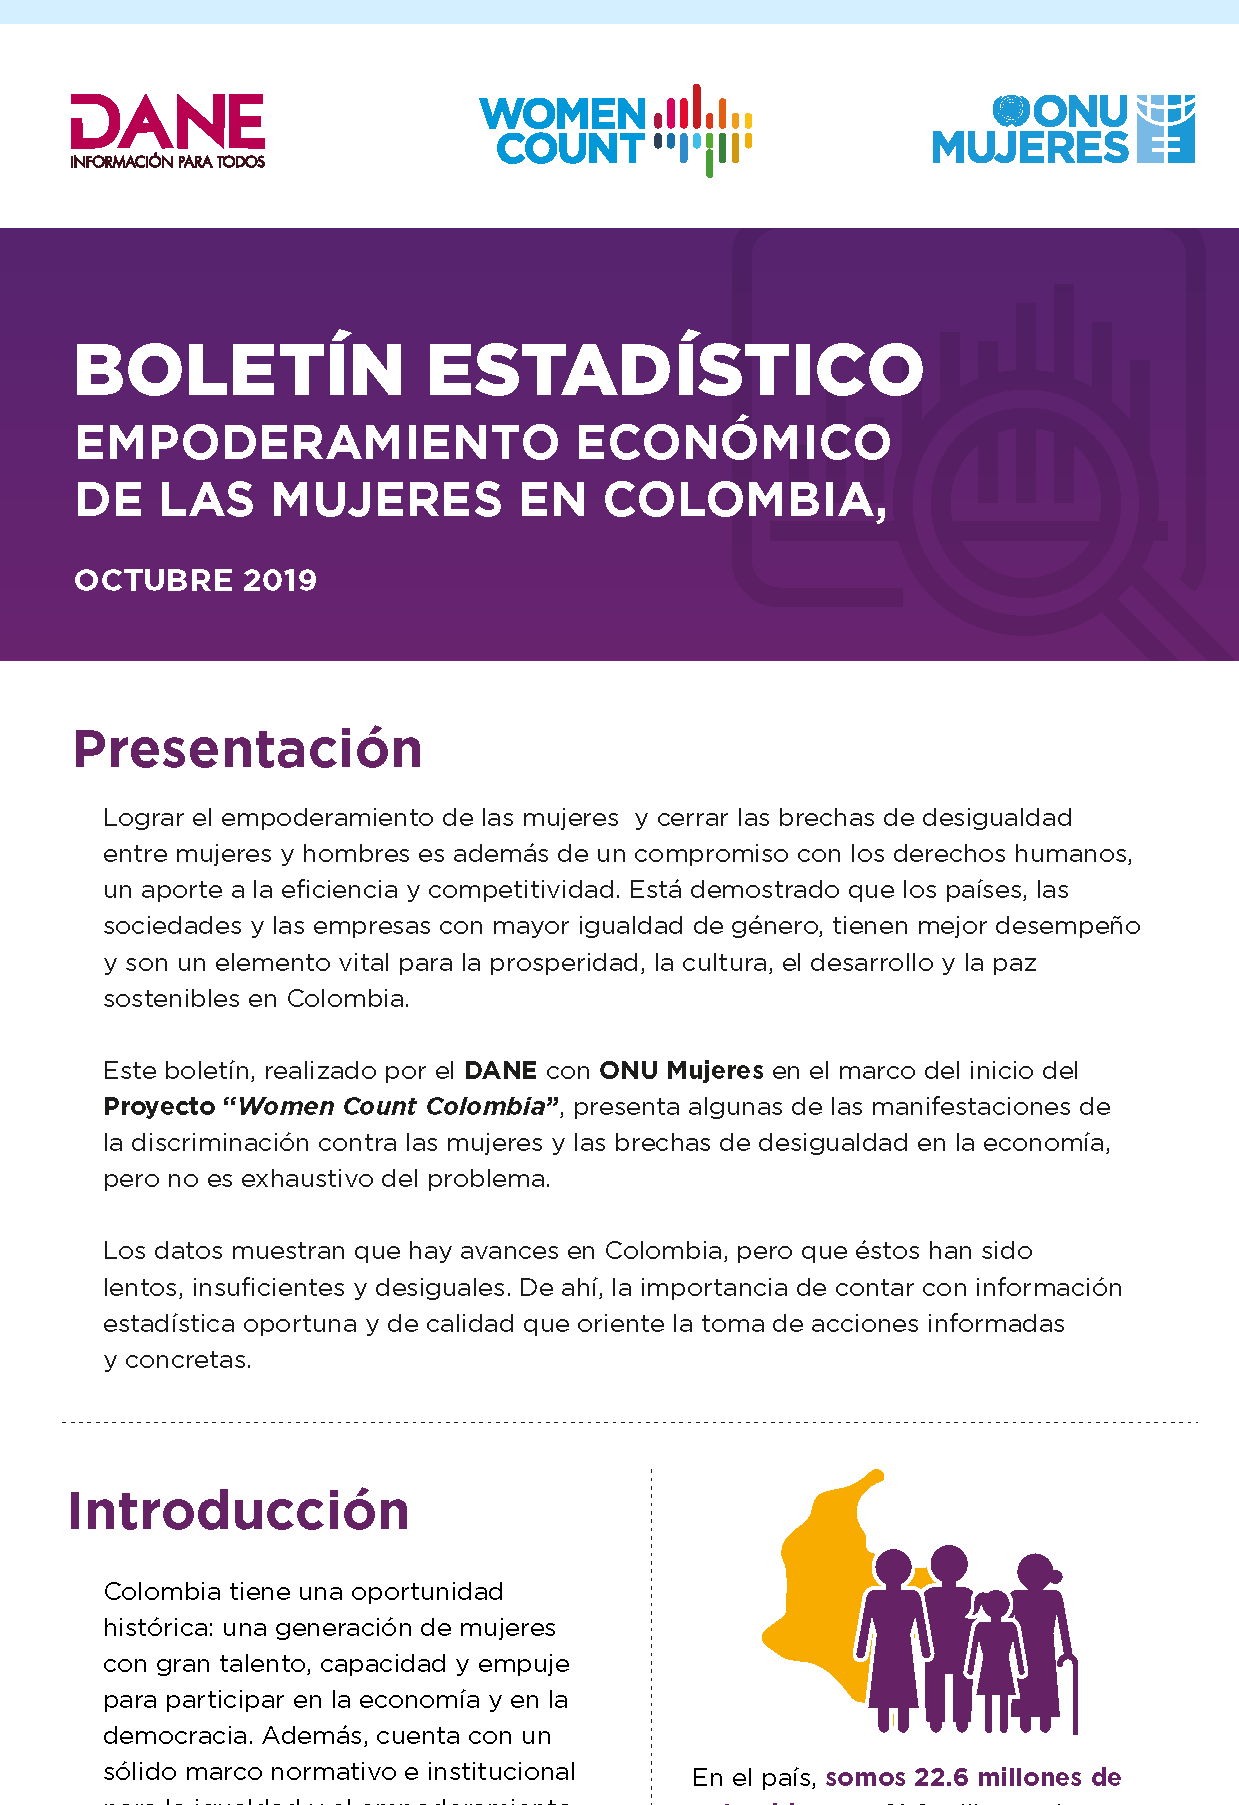 Statistical bulletin: women's economic empowerment in Colombia